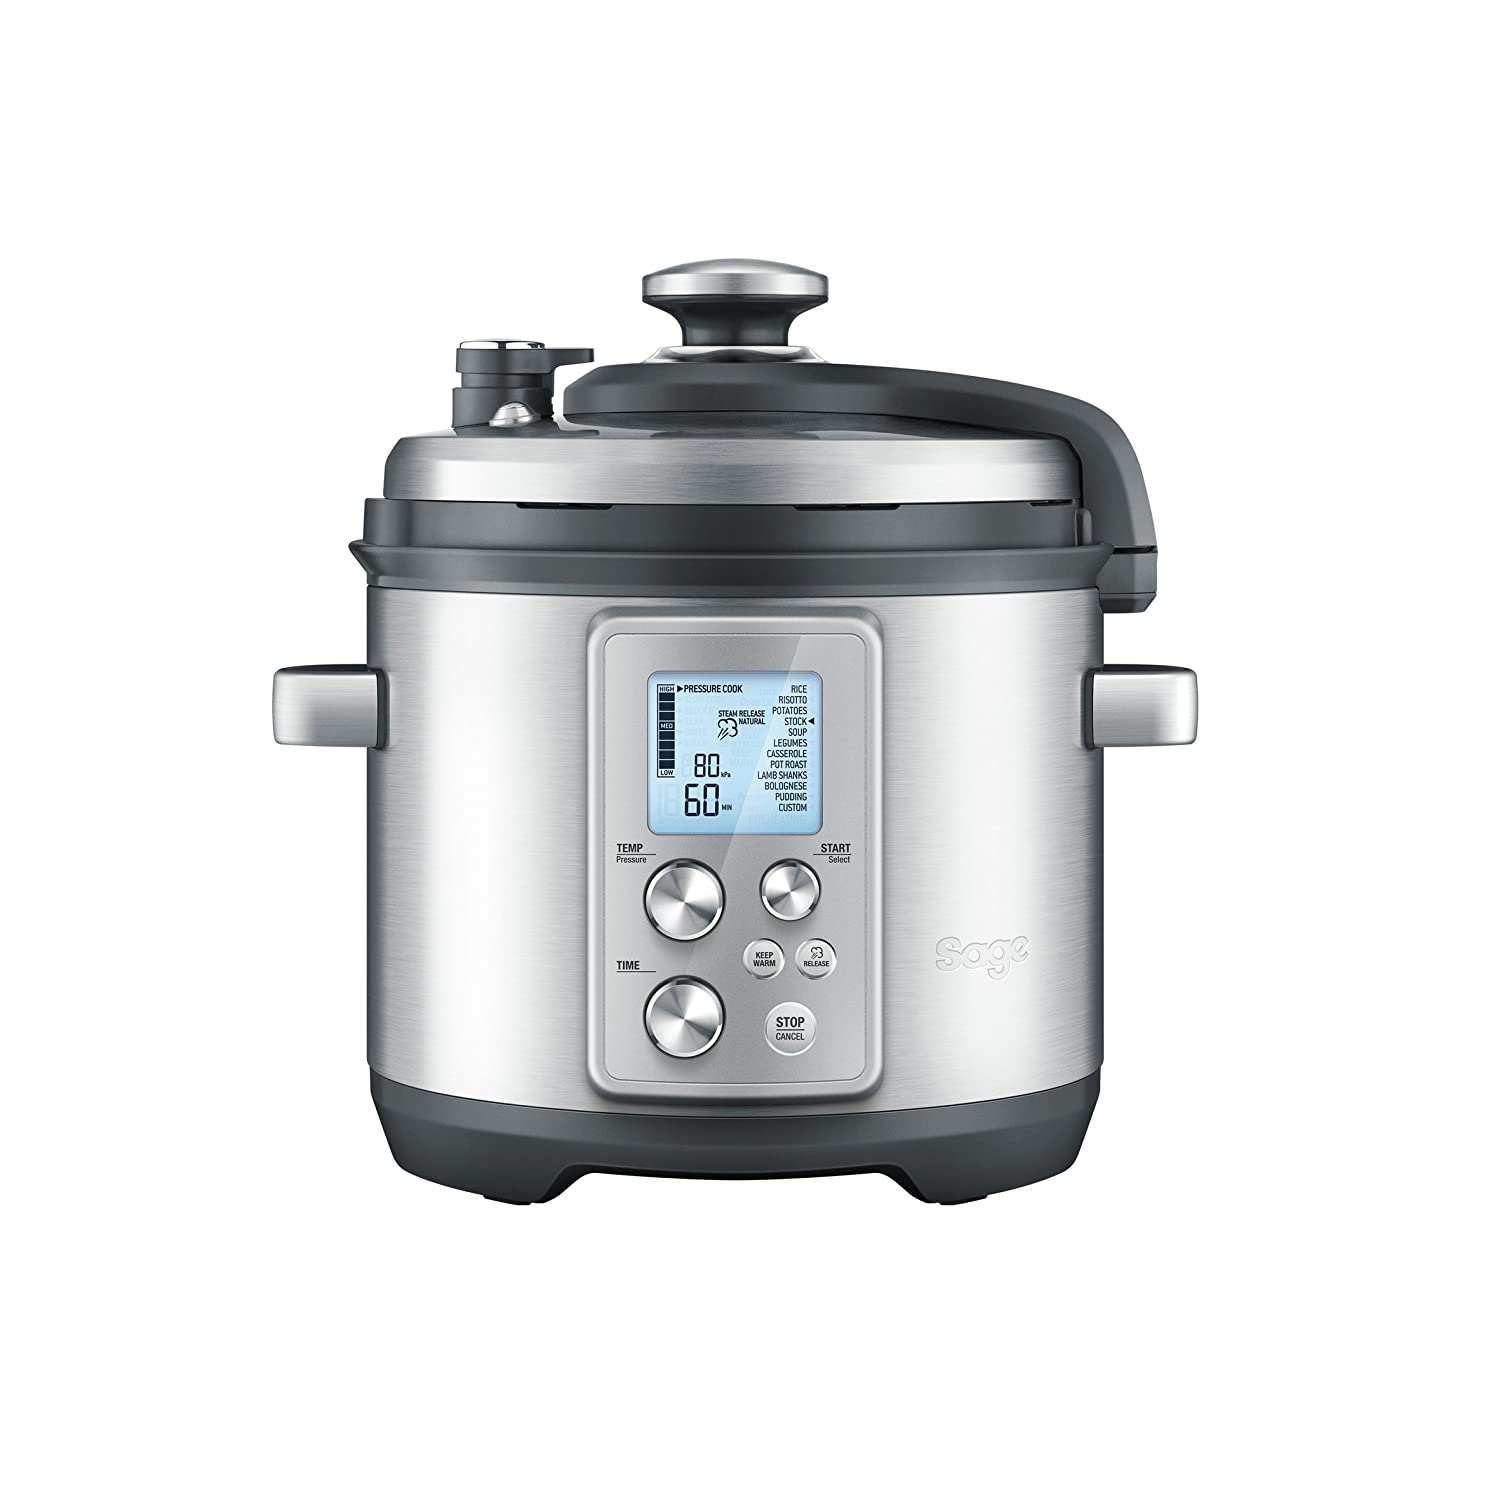 Sage the Fast Slow Cooker Pro